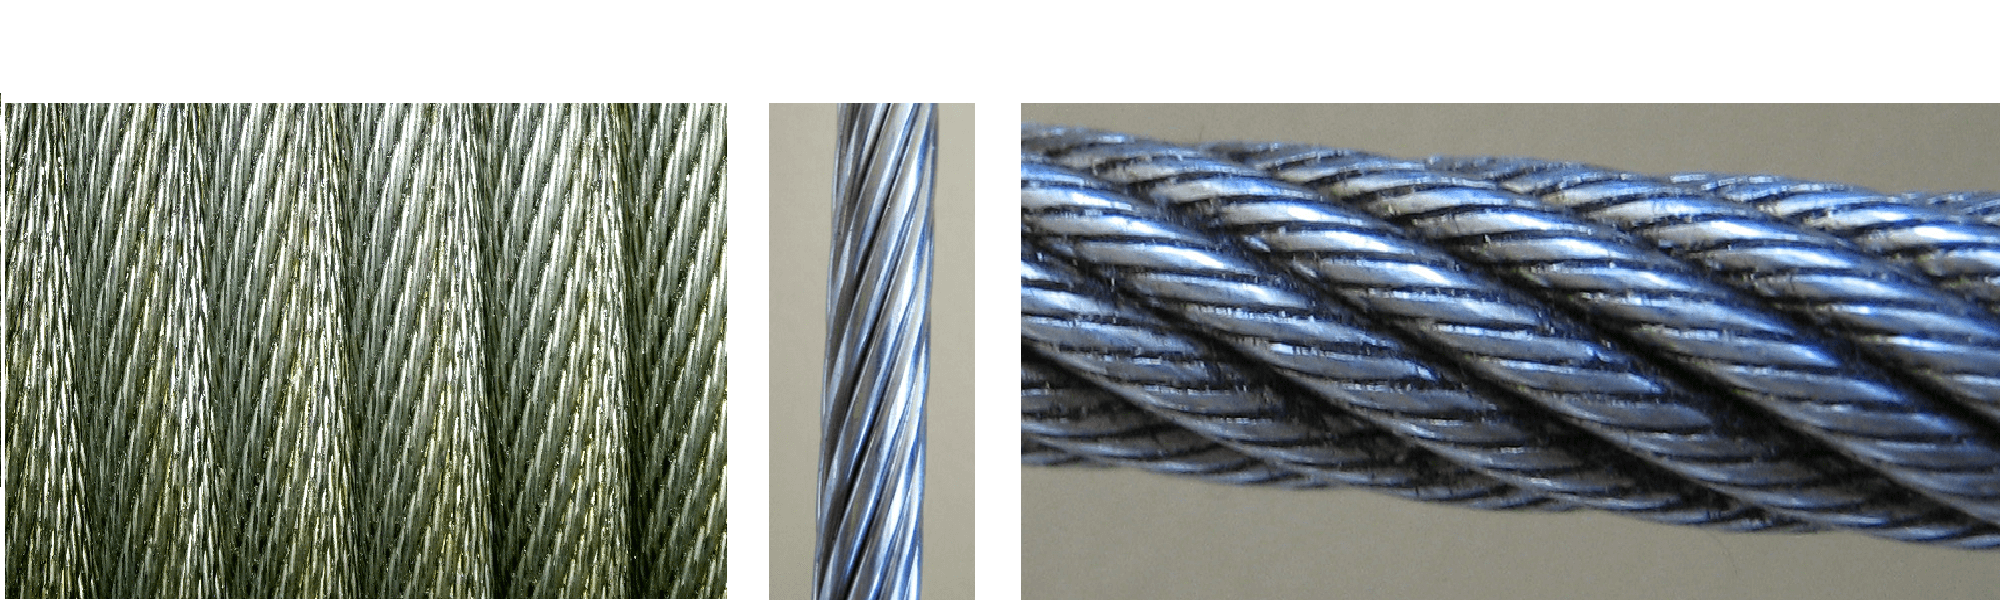 compacted wire rope